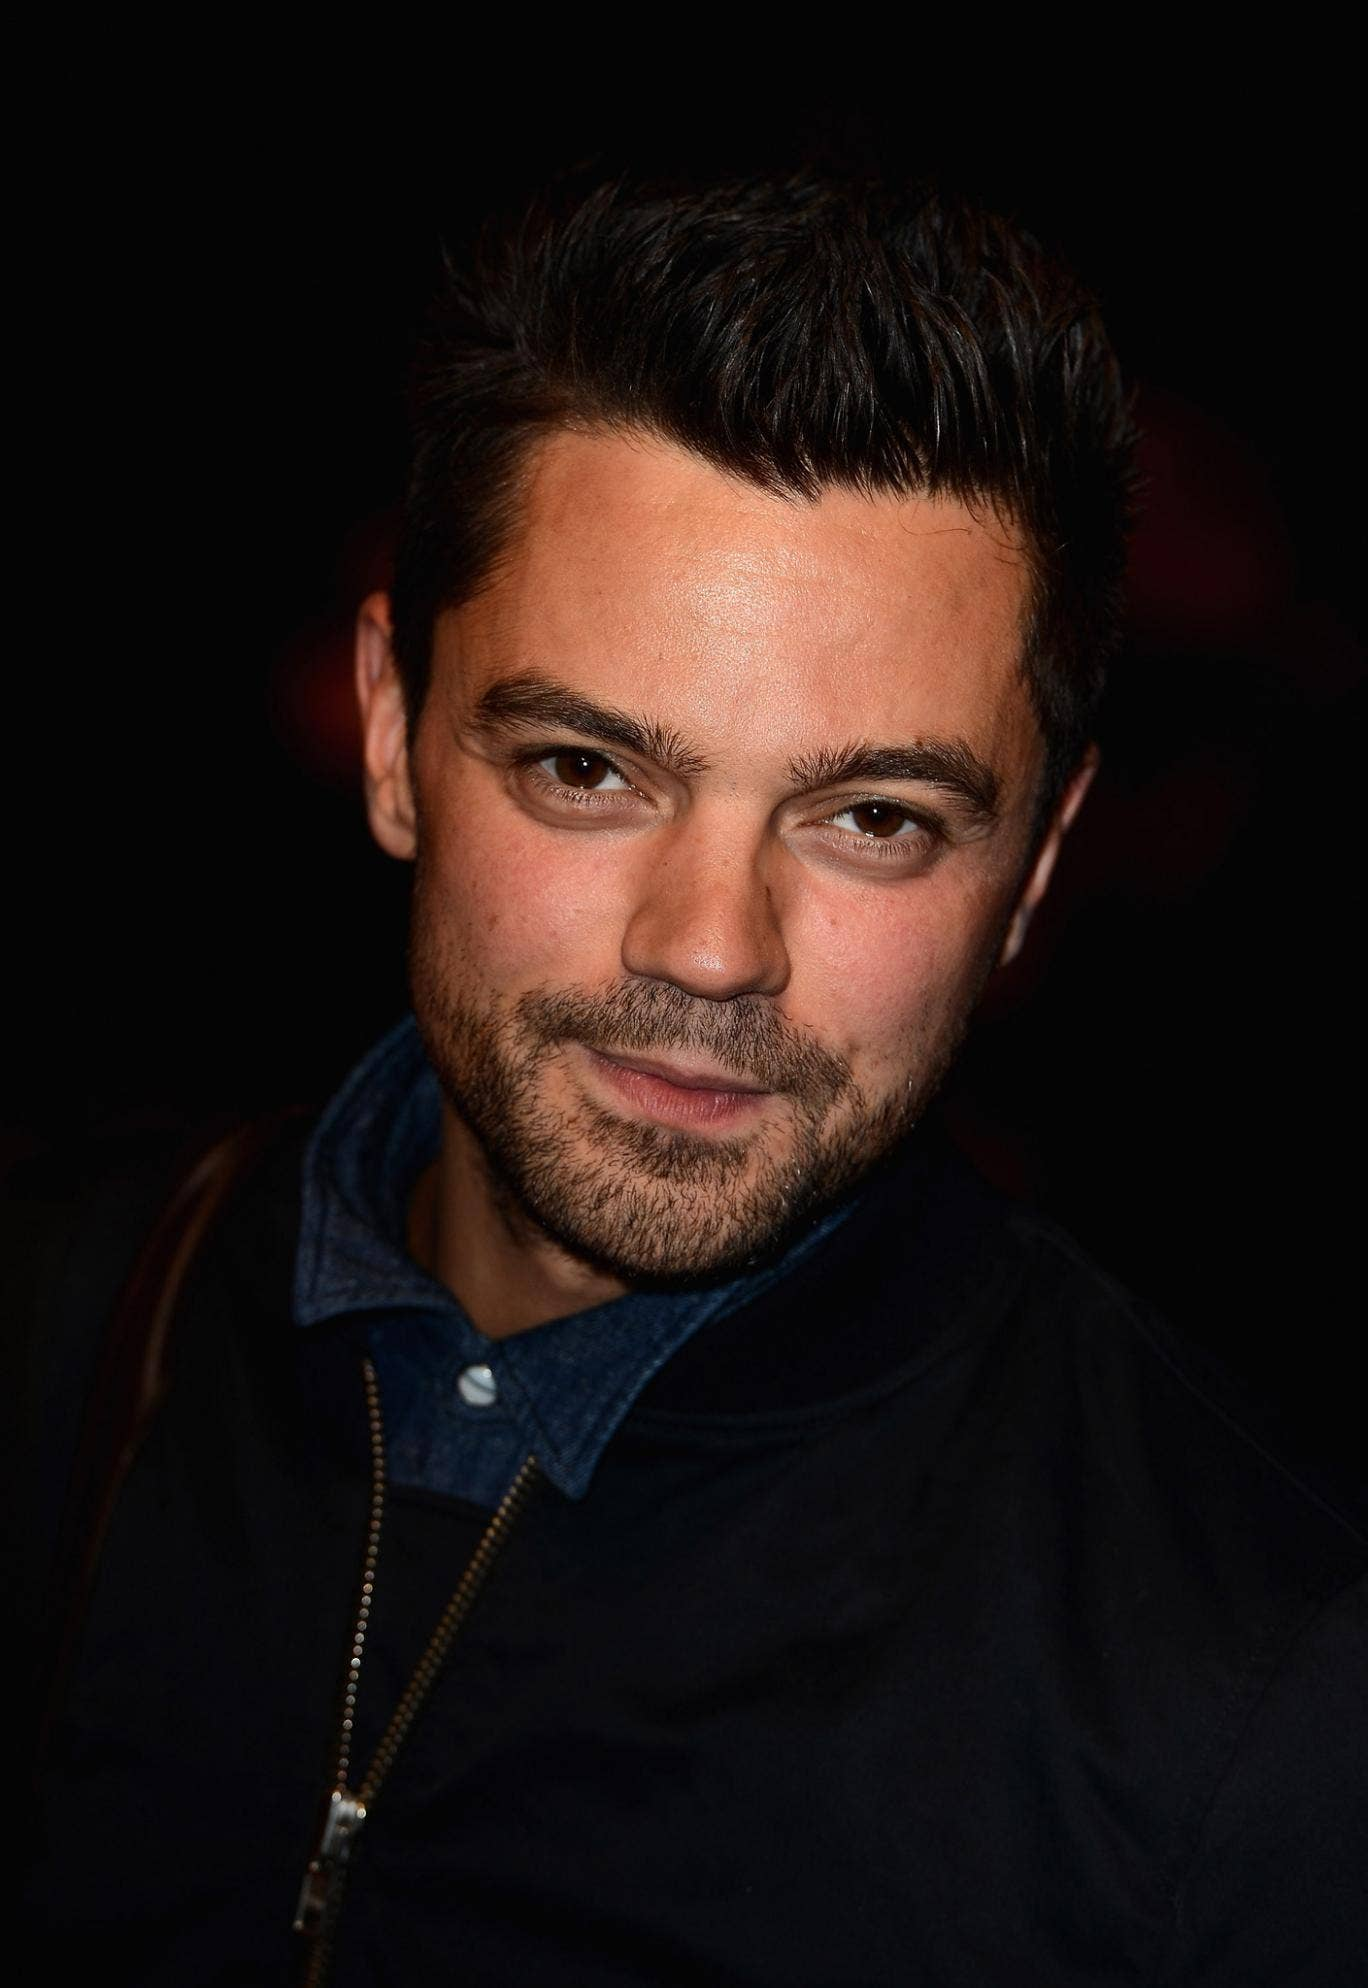 Prince of darkness? Dominic Cooper set to play Dracula in new film